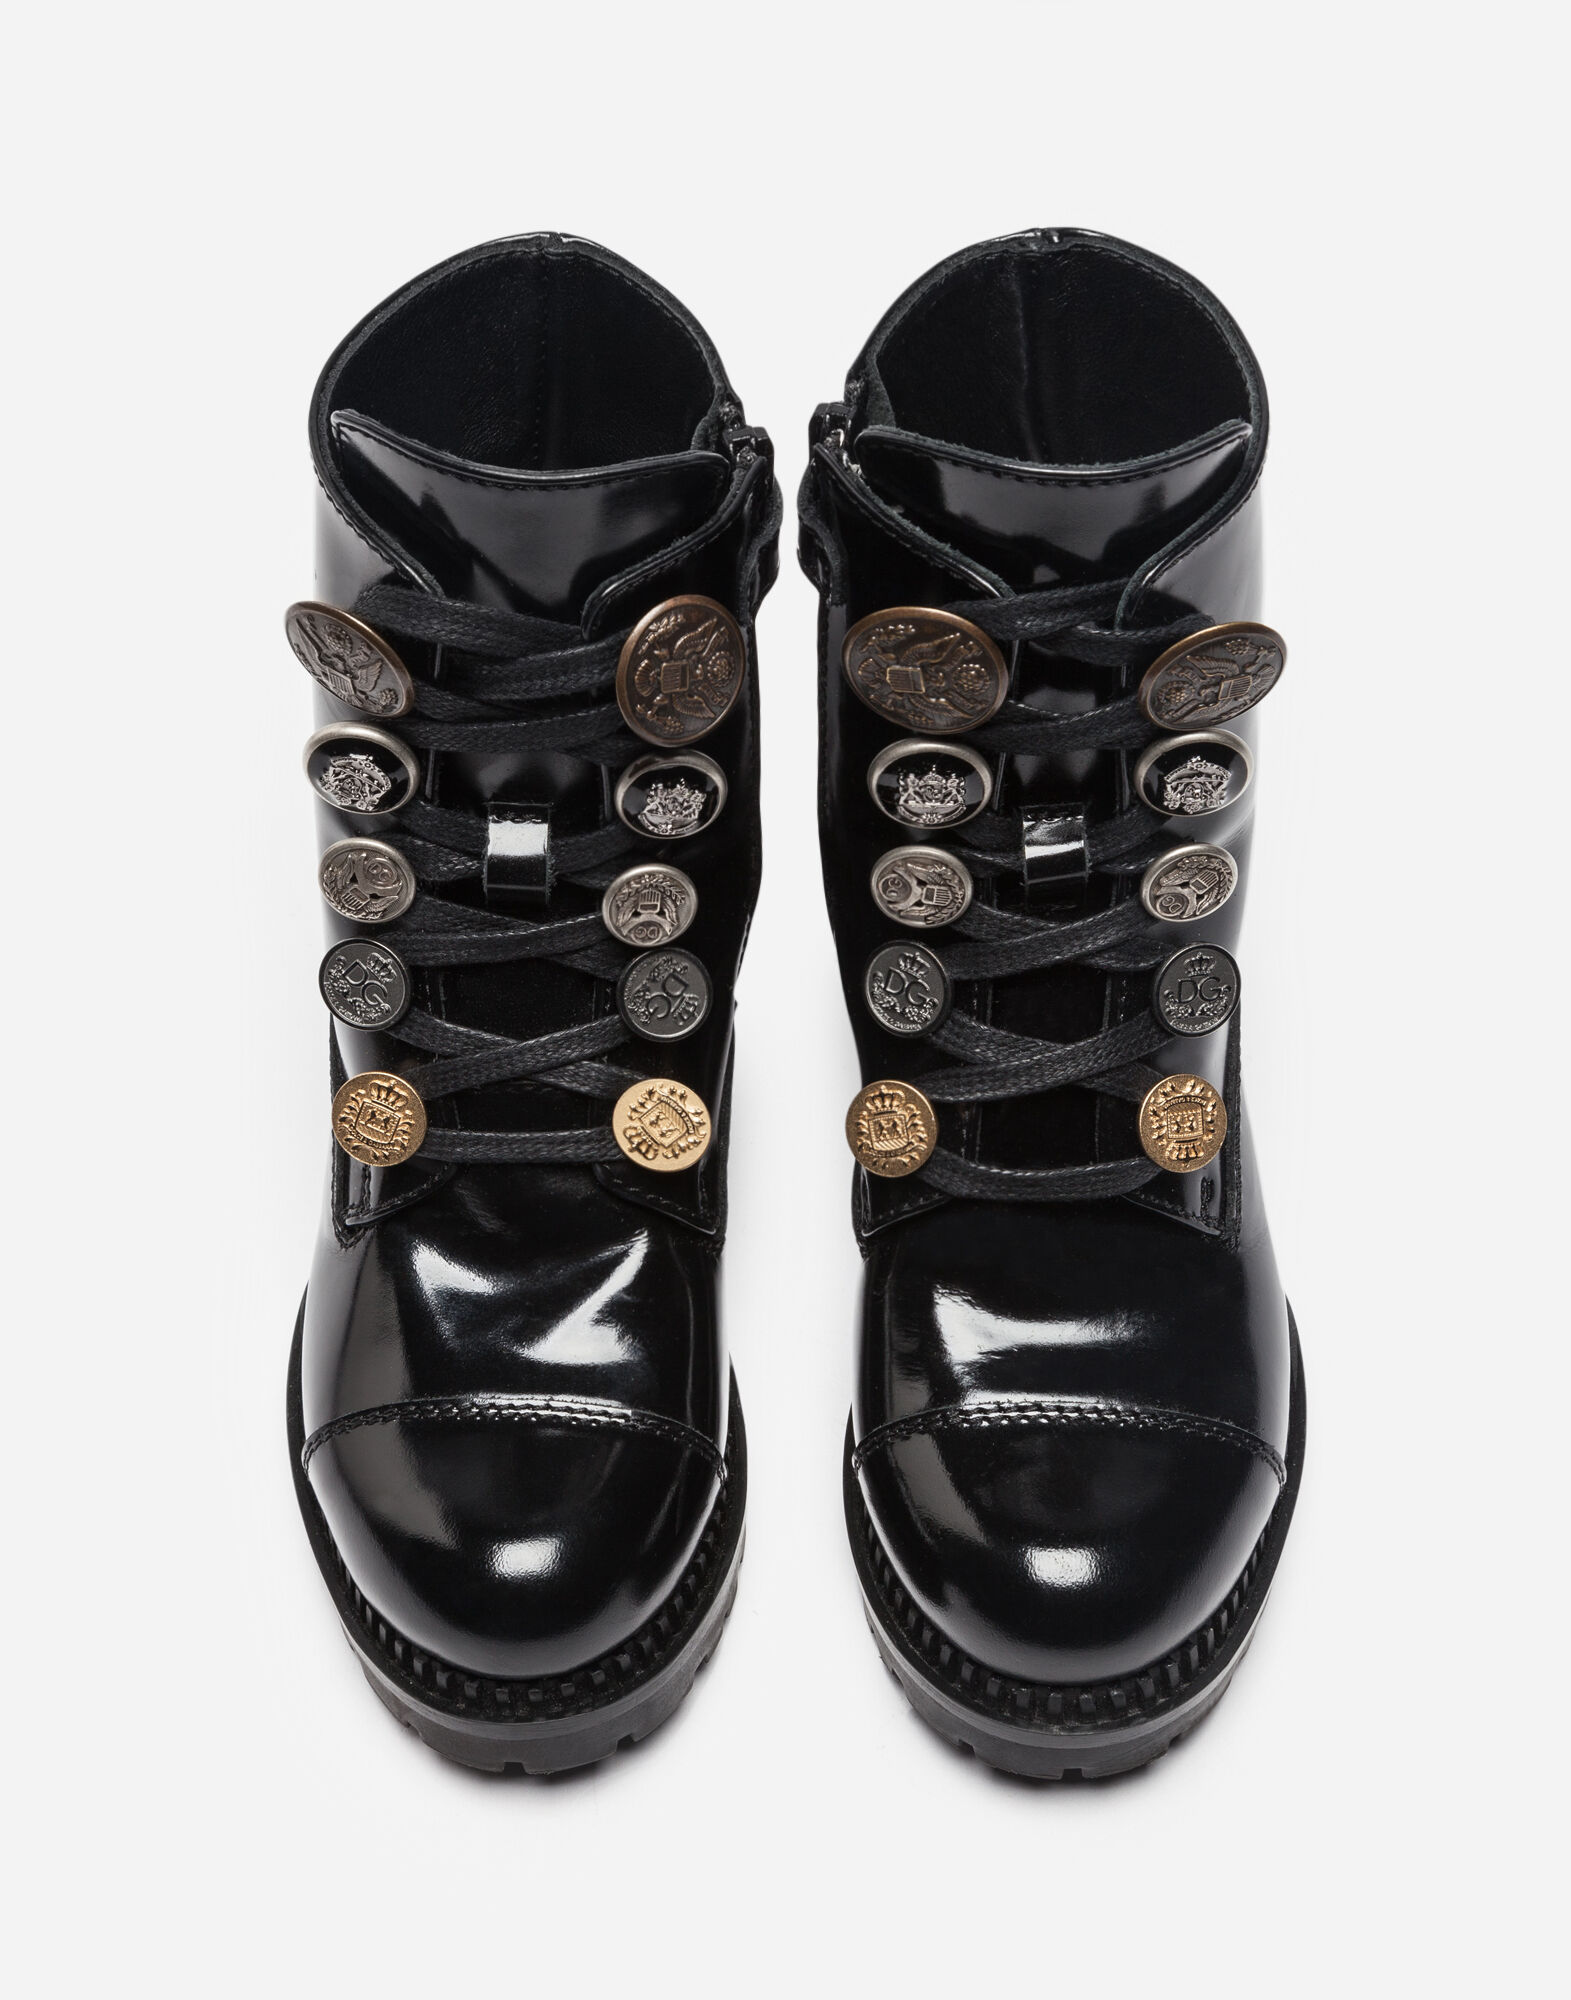 LEATHER BIKER BOOTS WITH DECORATIVE BUTTONS